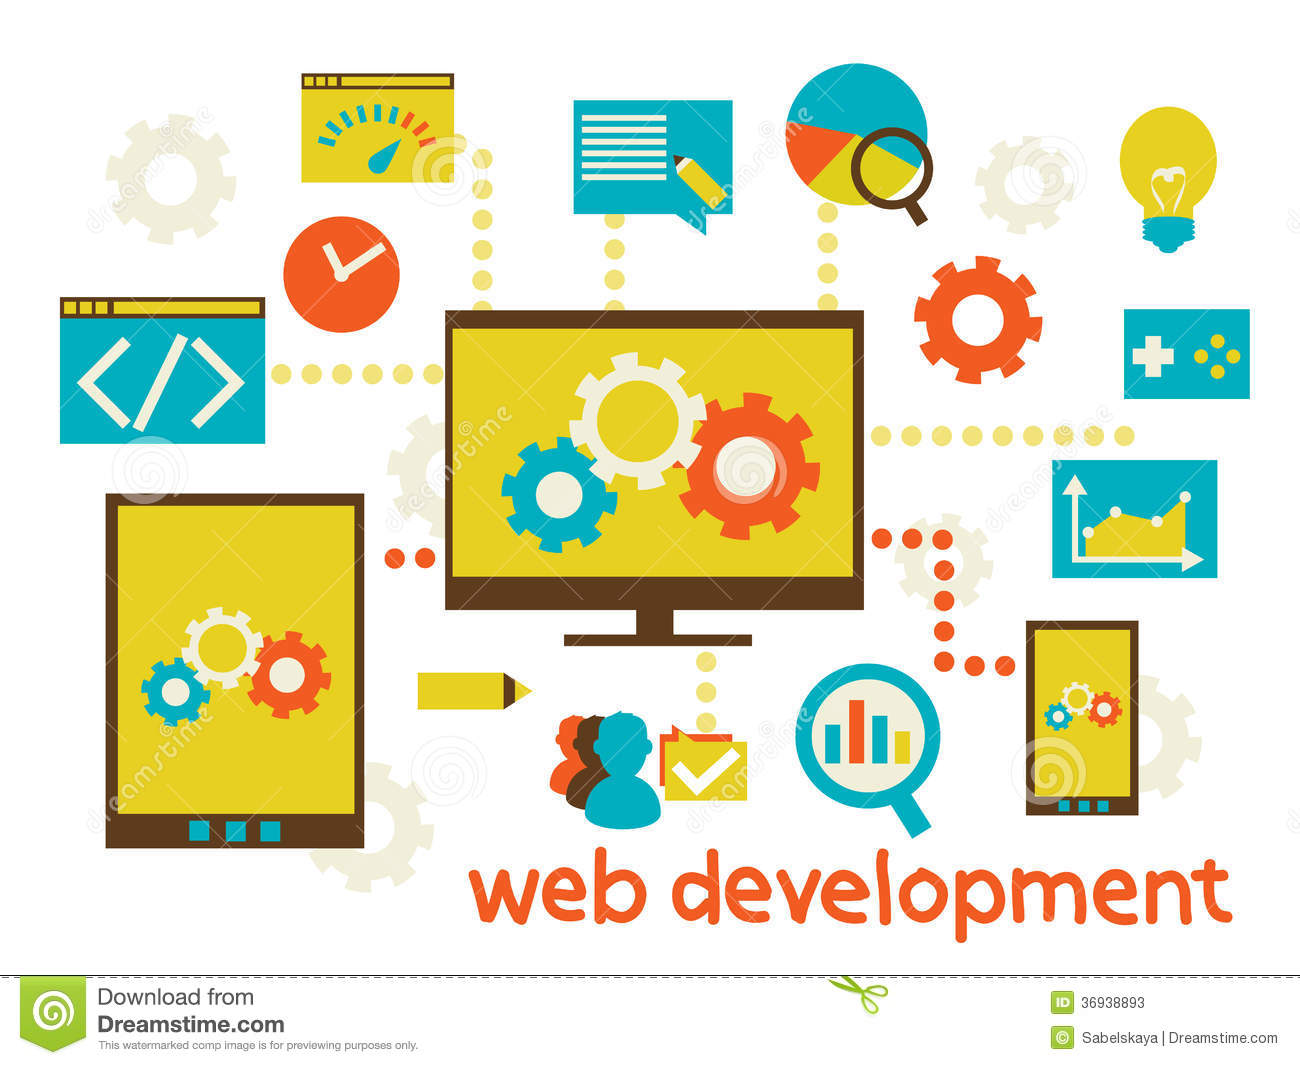 web-development-flat-modern-illustration-design-vector-eps-36938893.jpg